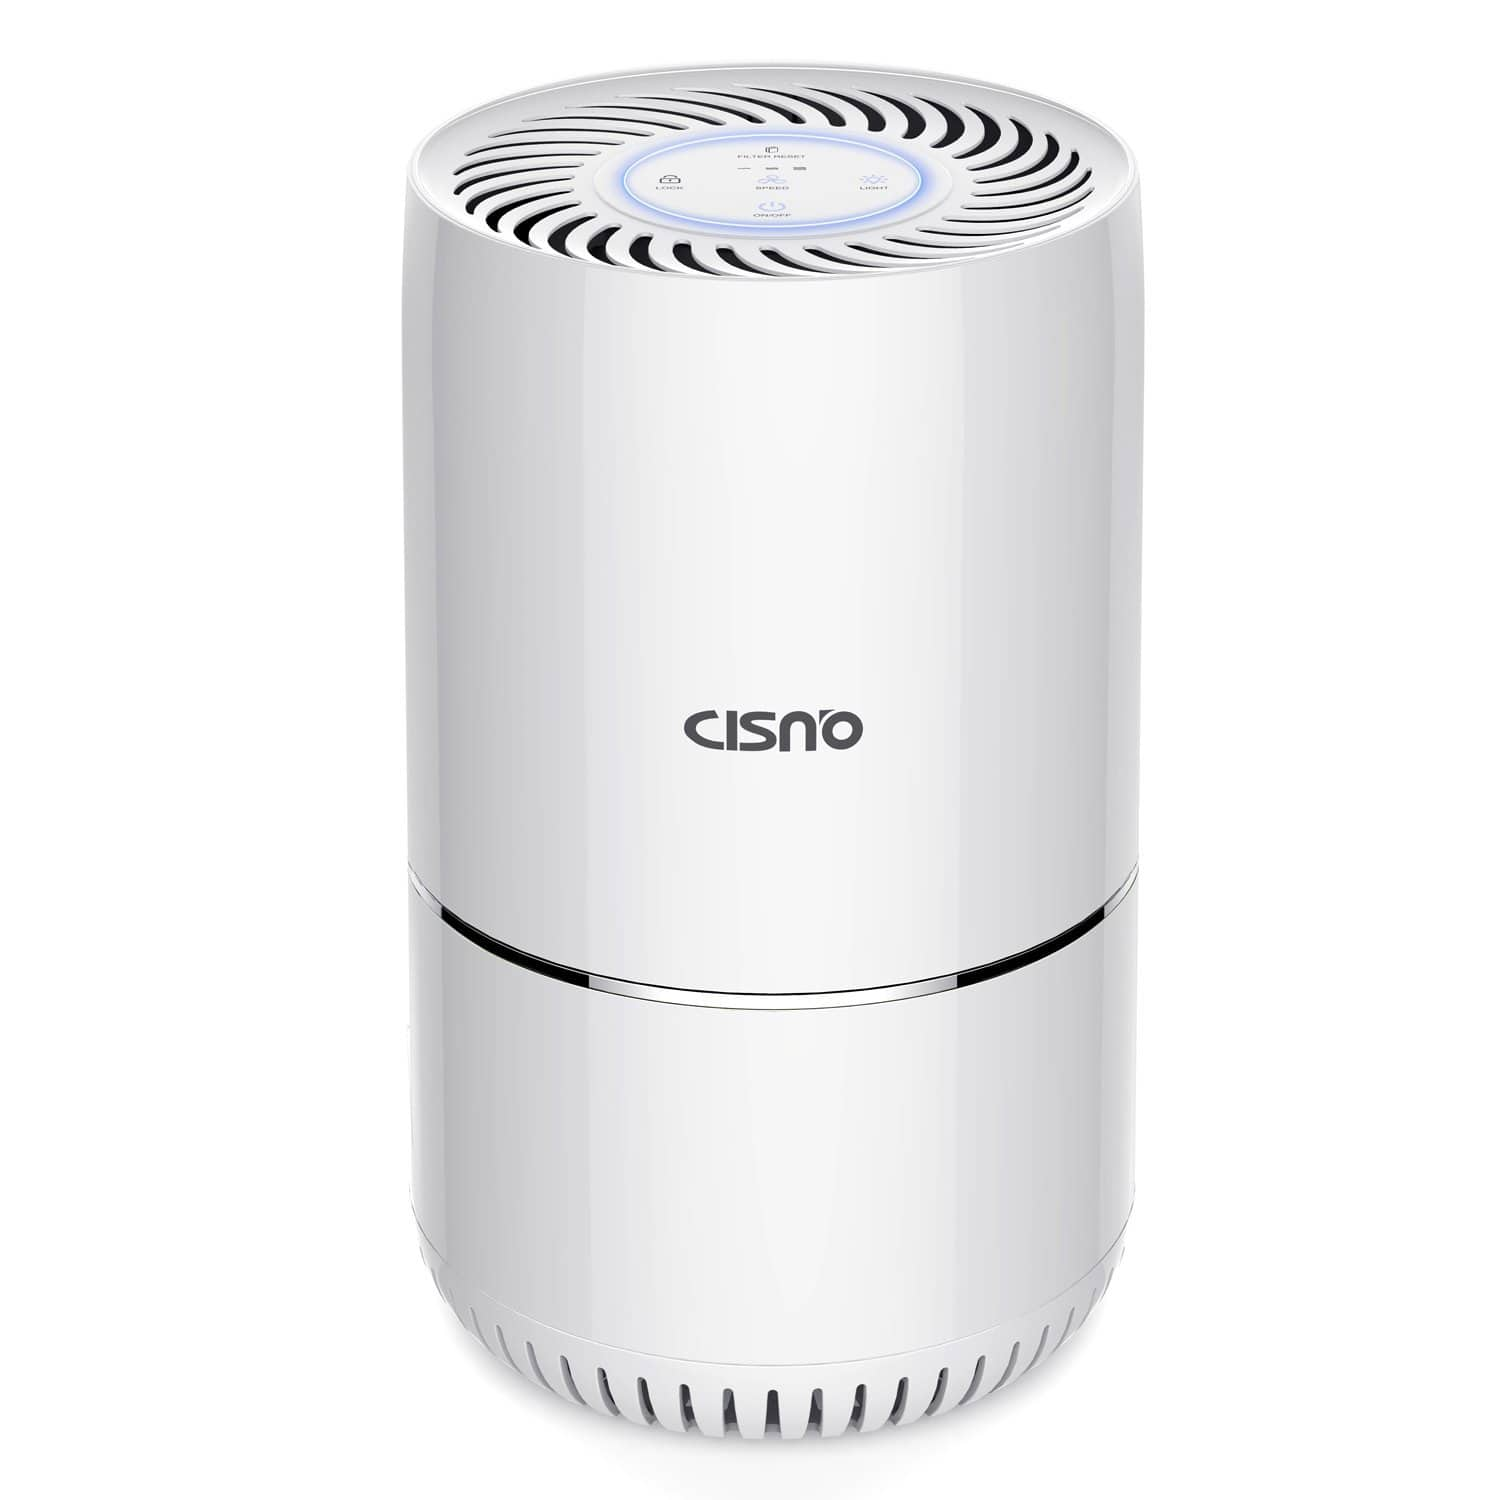 CISNO Air Purifier With True HEPA Filter, $52.70